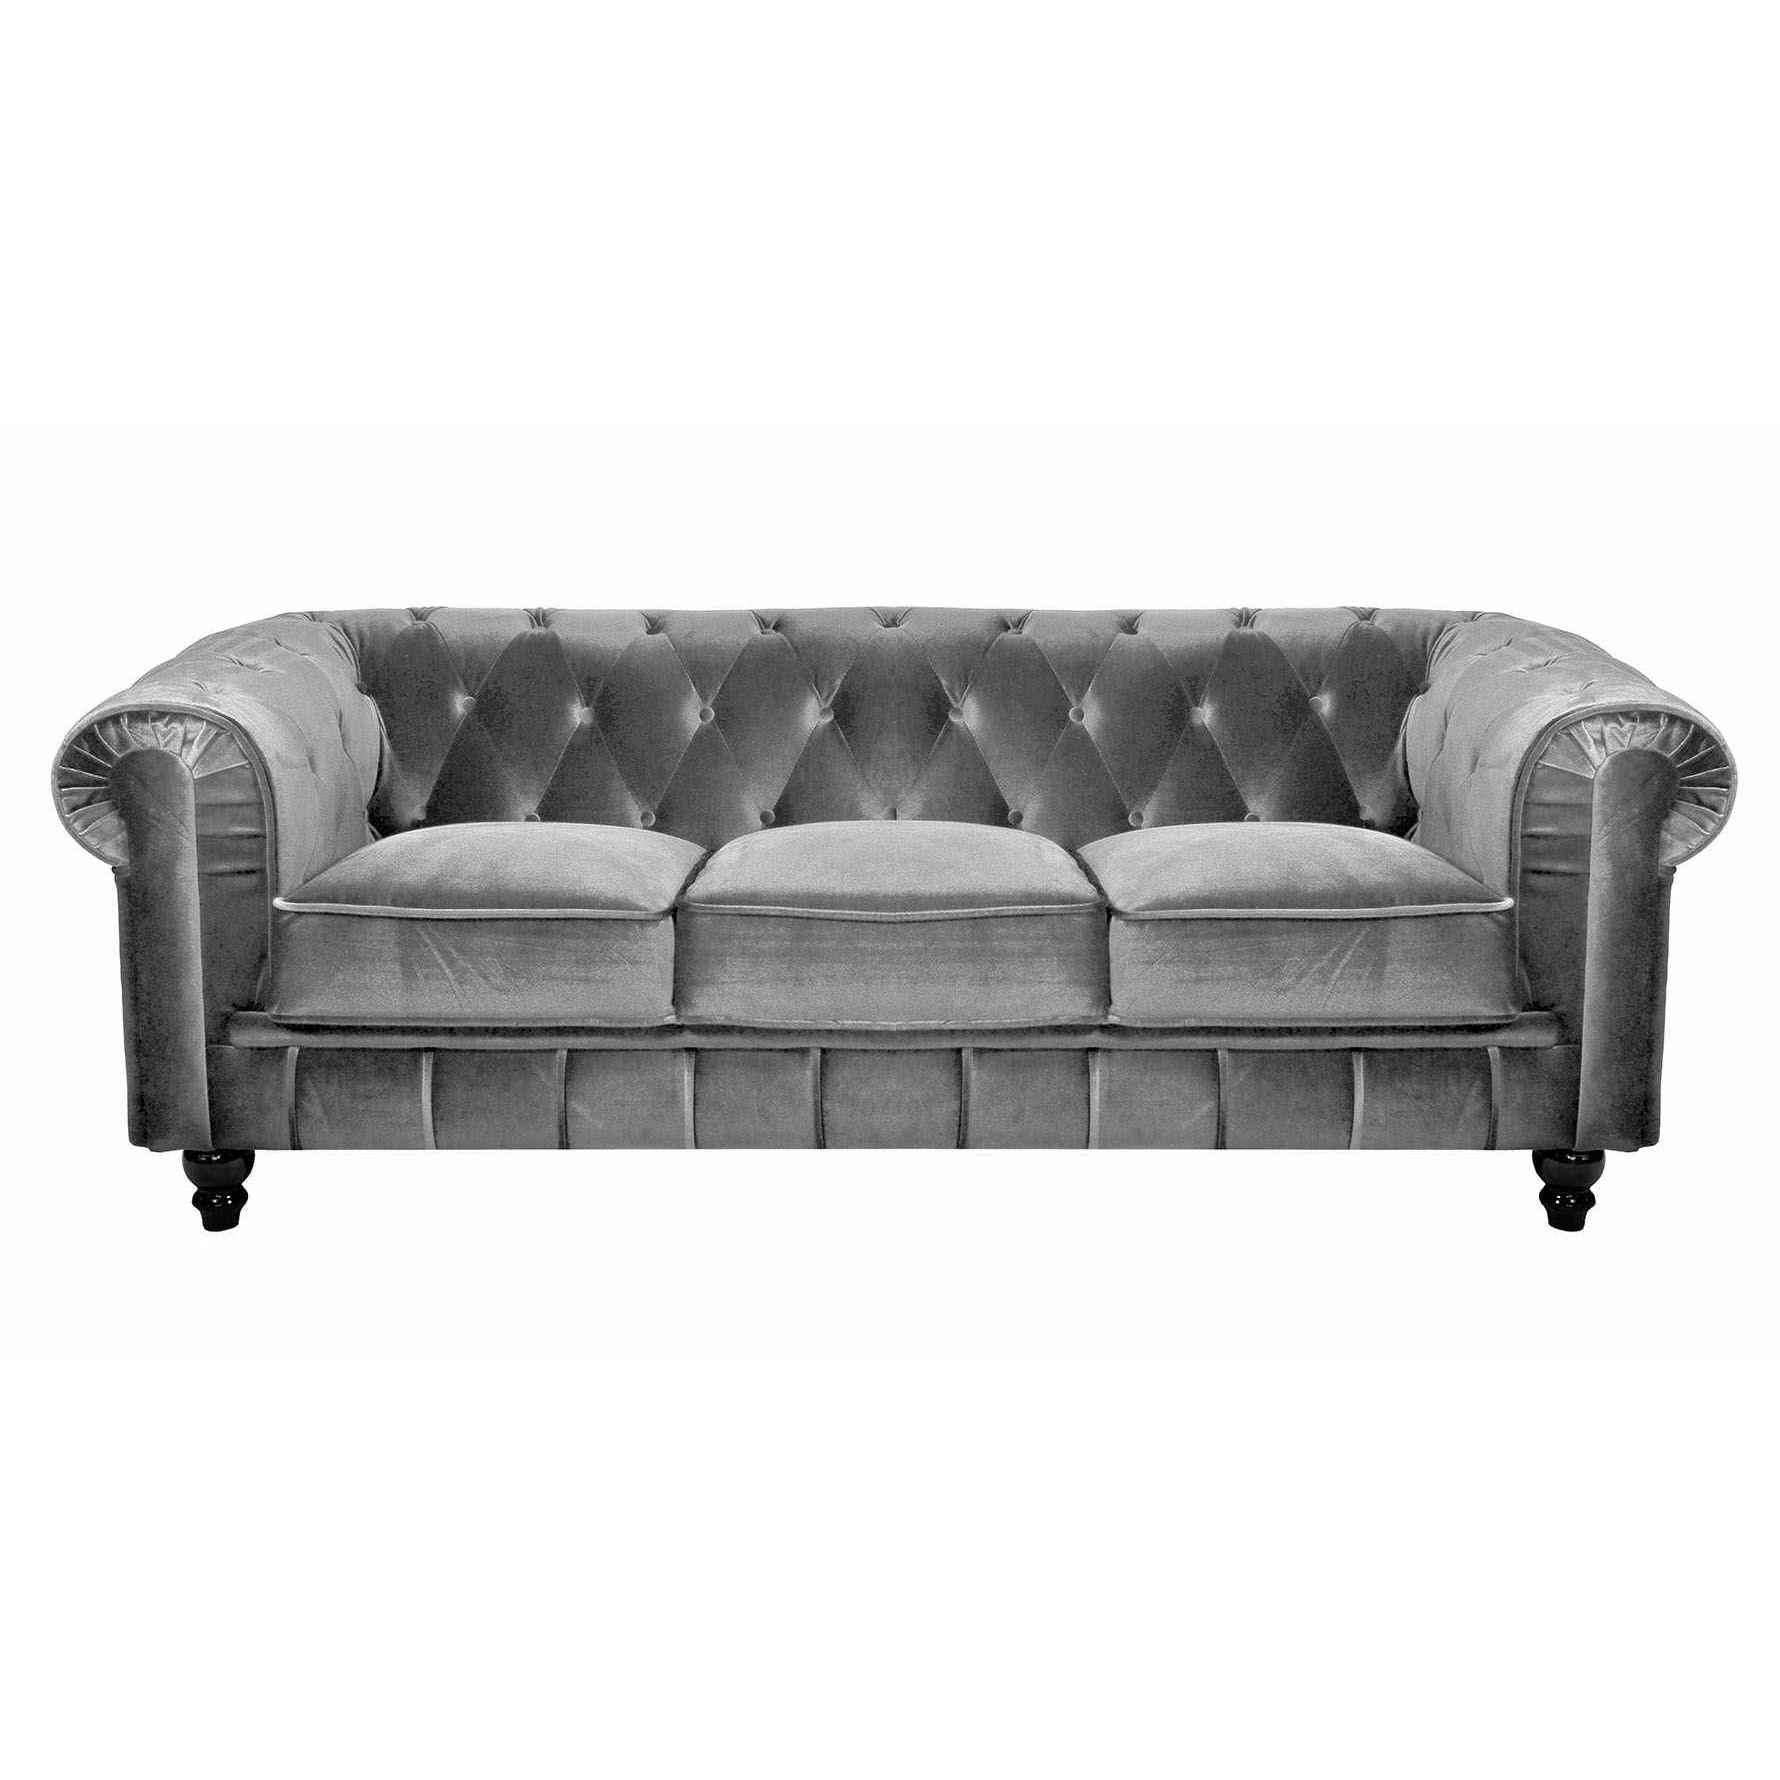 Deco Salon Chesterfield Deco In Paris Canape 3 Places Velours Gris Chesterfield